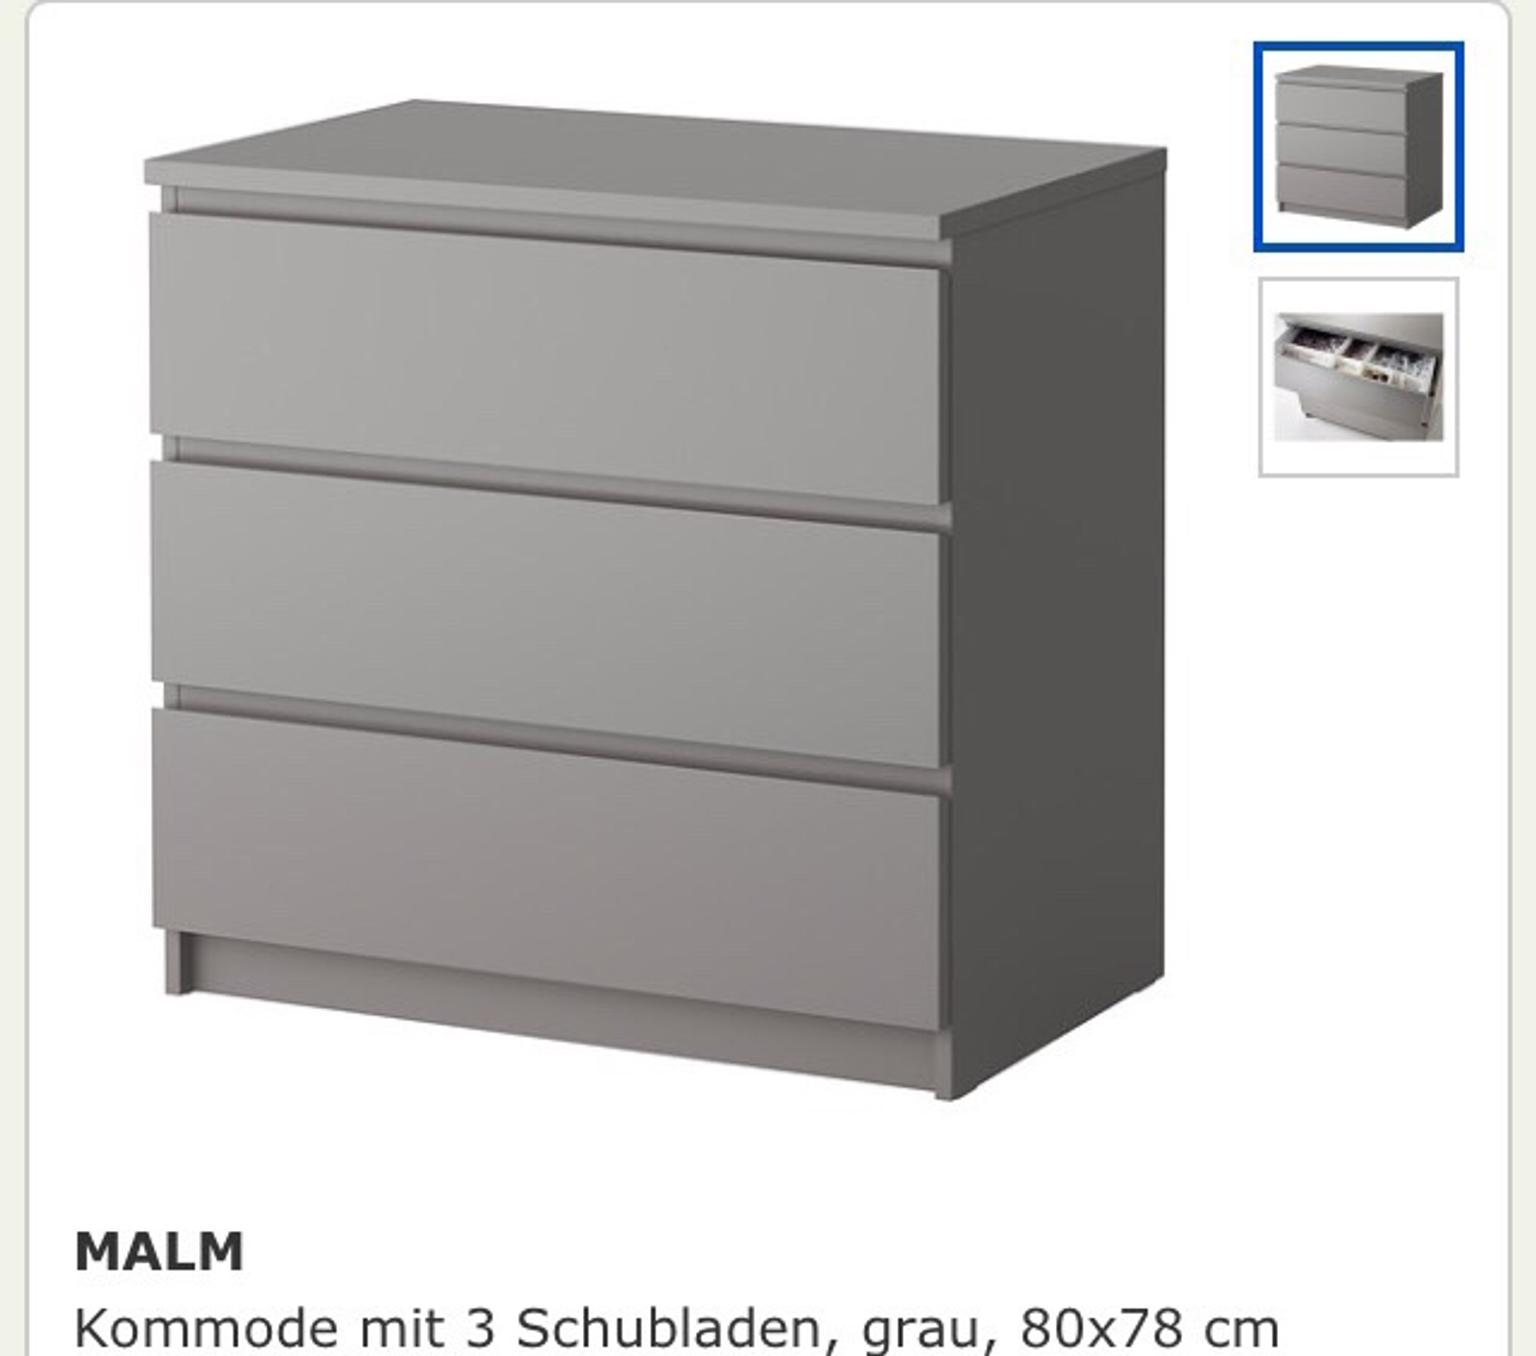 Kommode Holz Grau Ikea Malm Kommode Grau In 45128 Essen For €45.00 For Sale